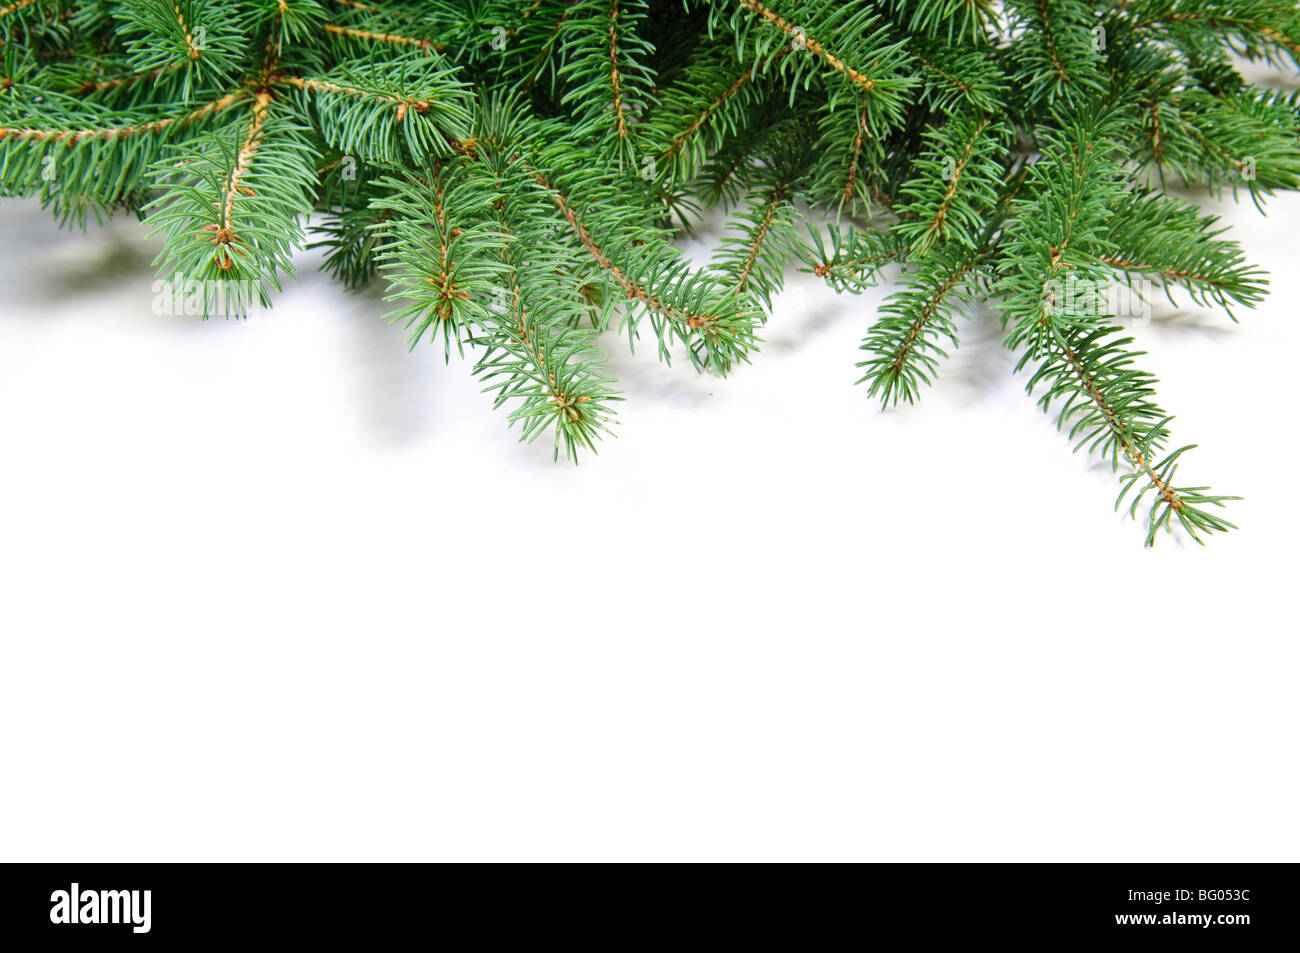 fir tree branch on white - Stock Image